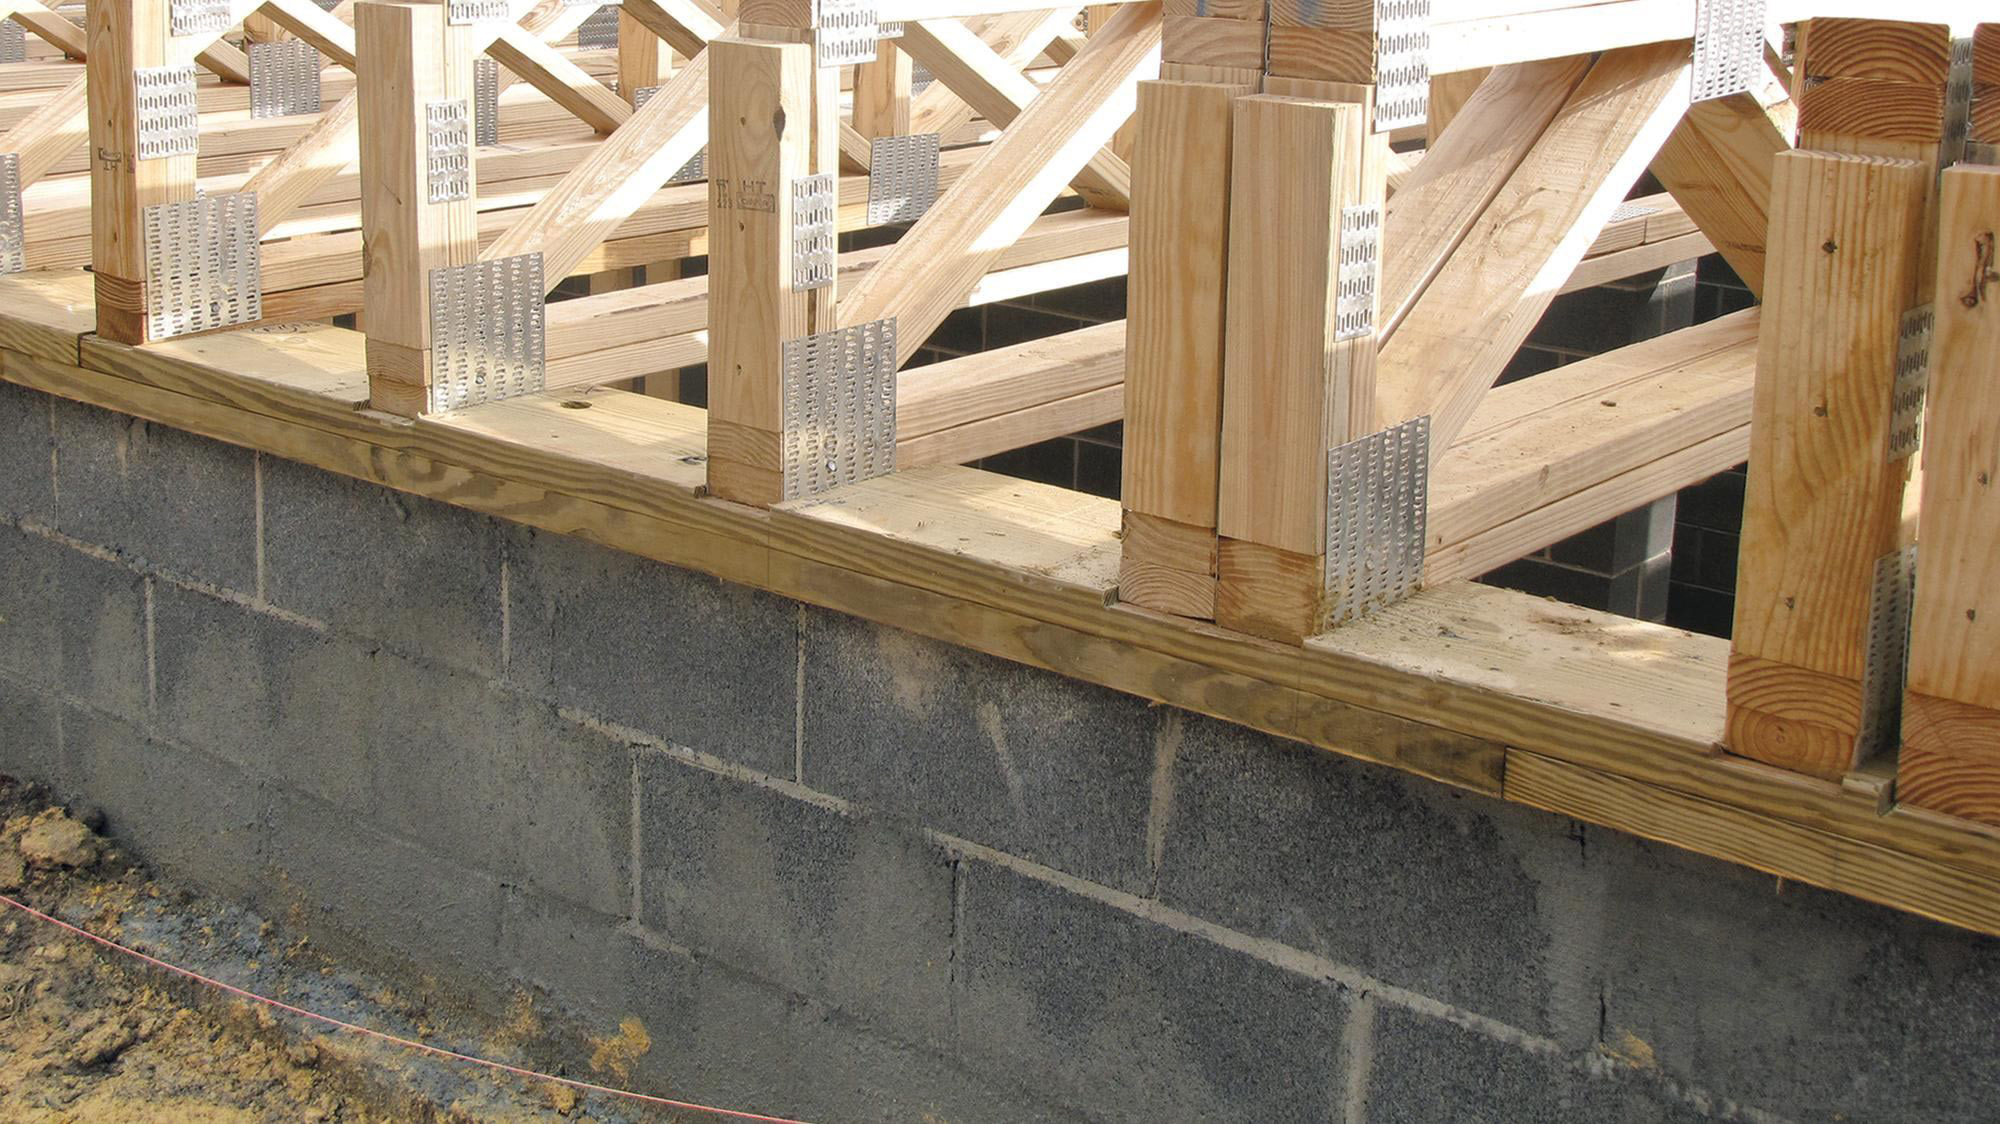 Floor trusses jlc online for I joist vs floor truss